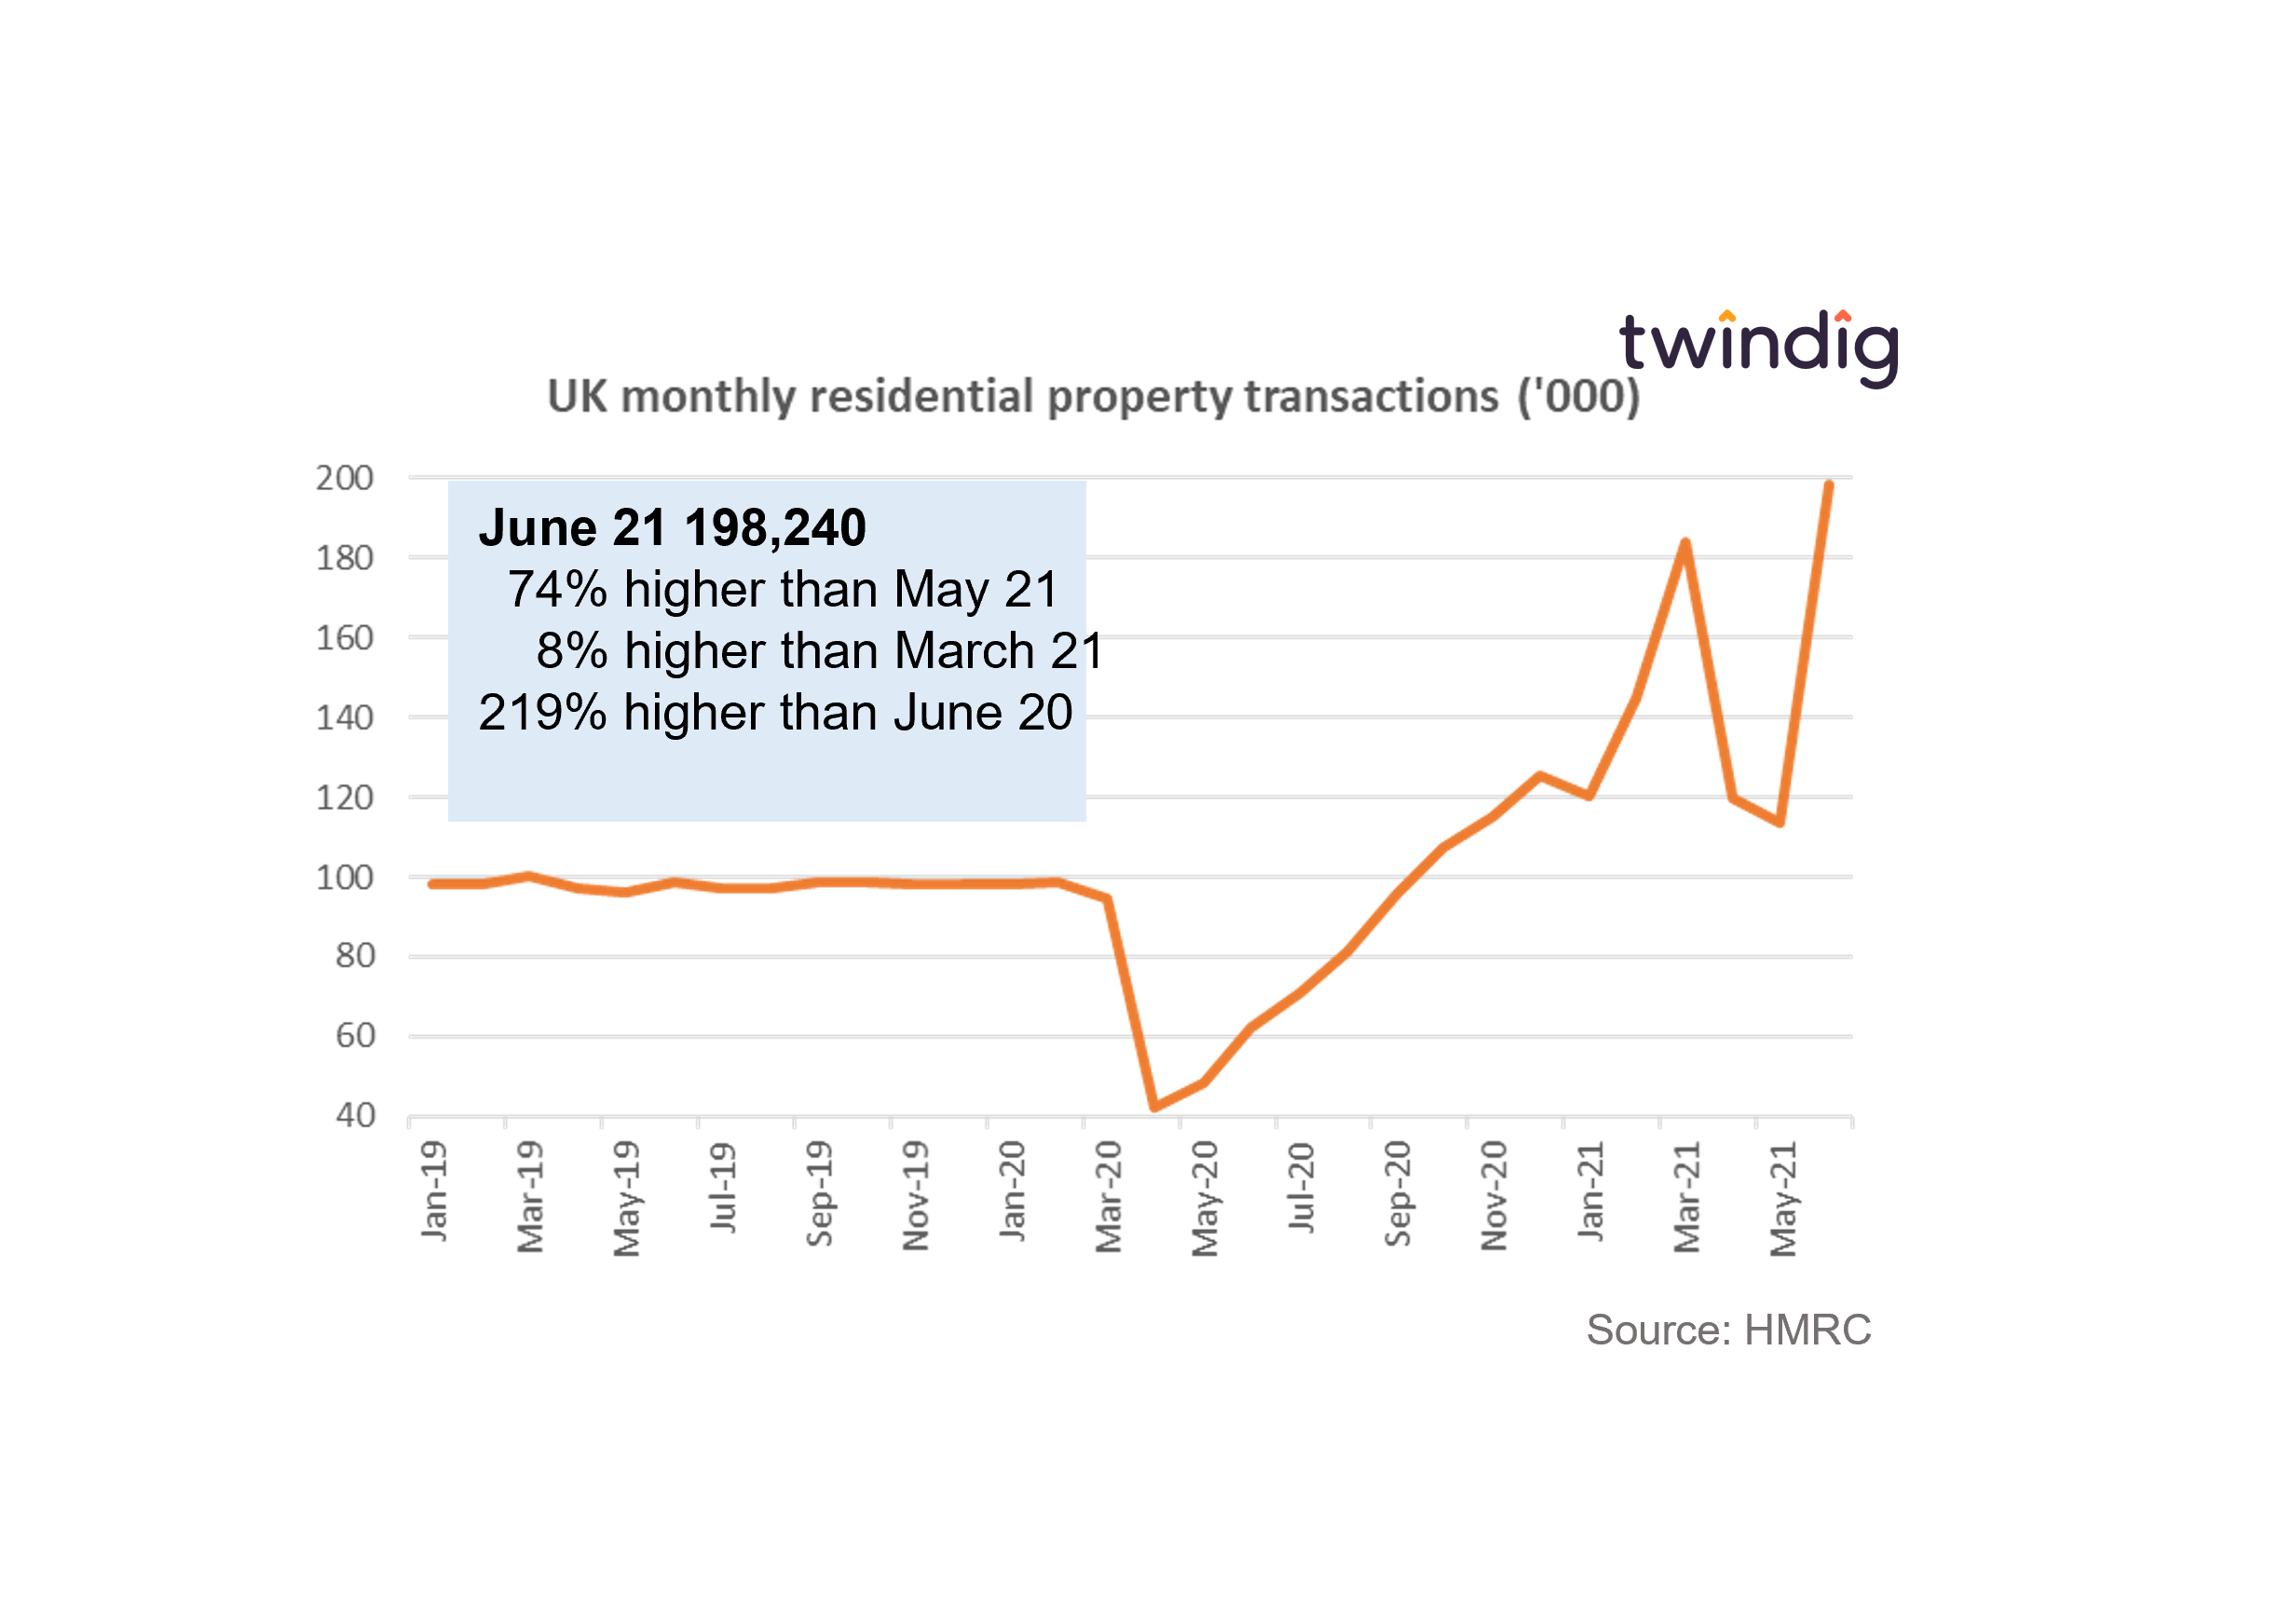 Graph chart showing uk housing transactions Jan 19 to June 21 record highs in June 21 twindig anthony codling